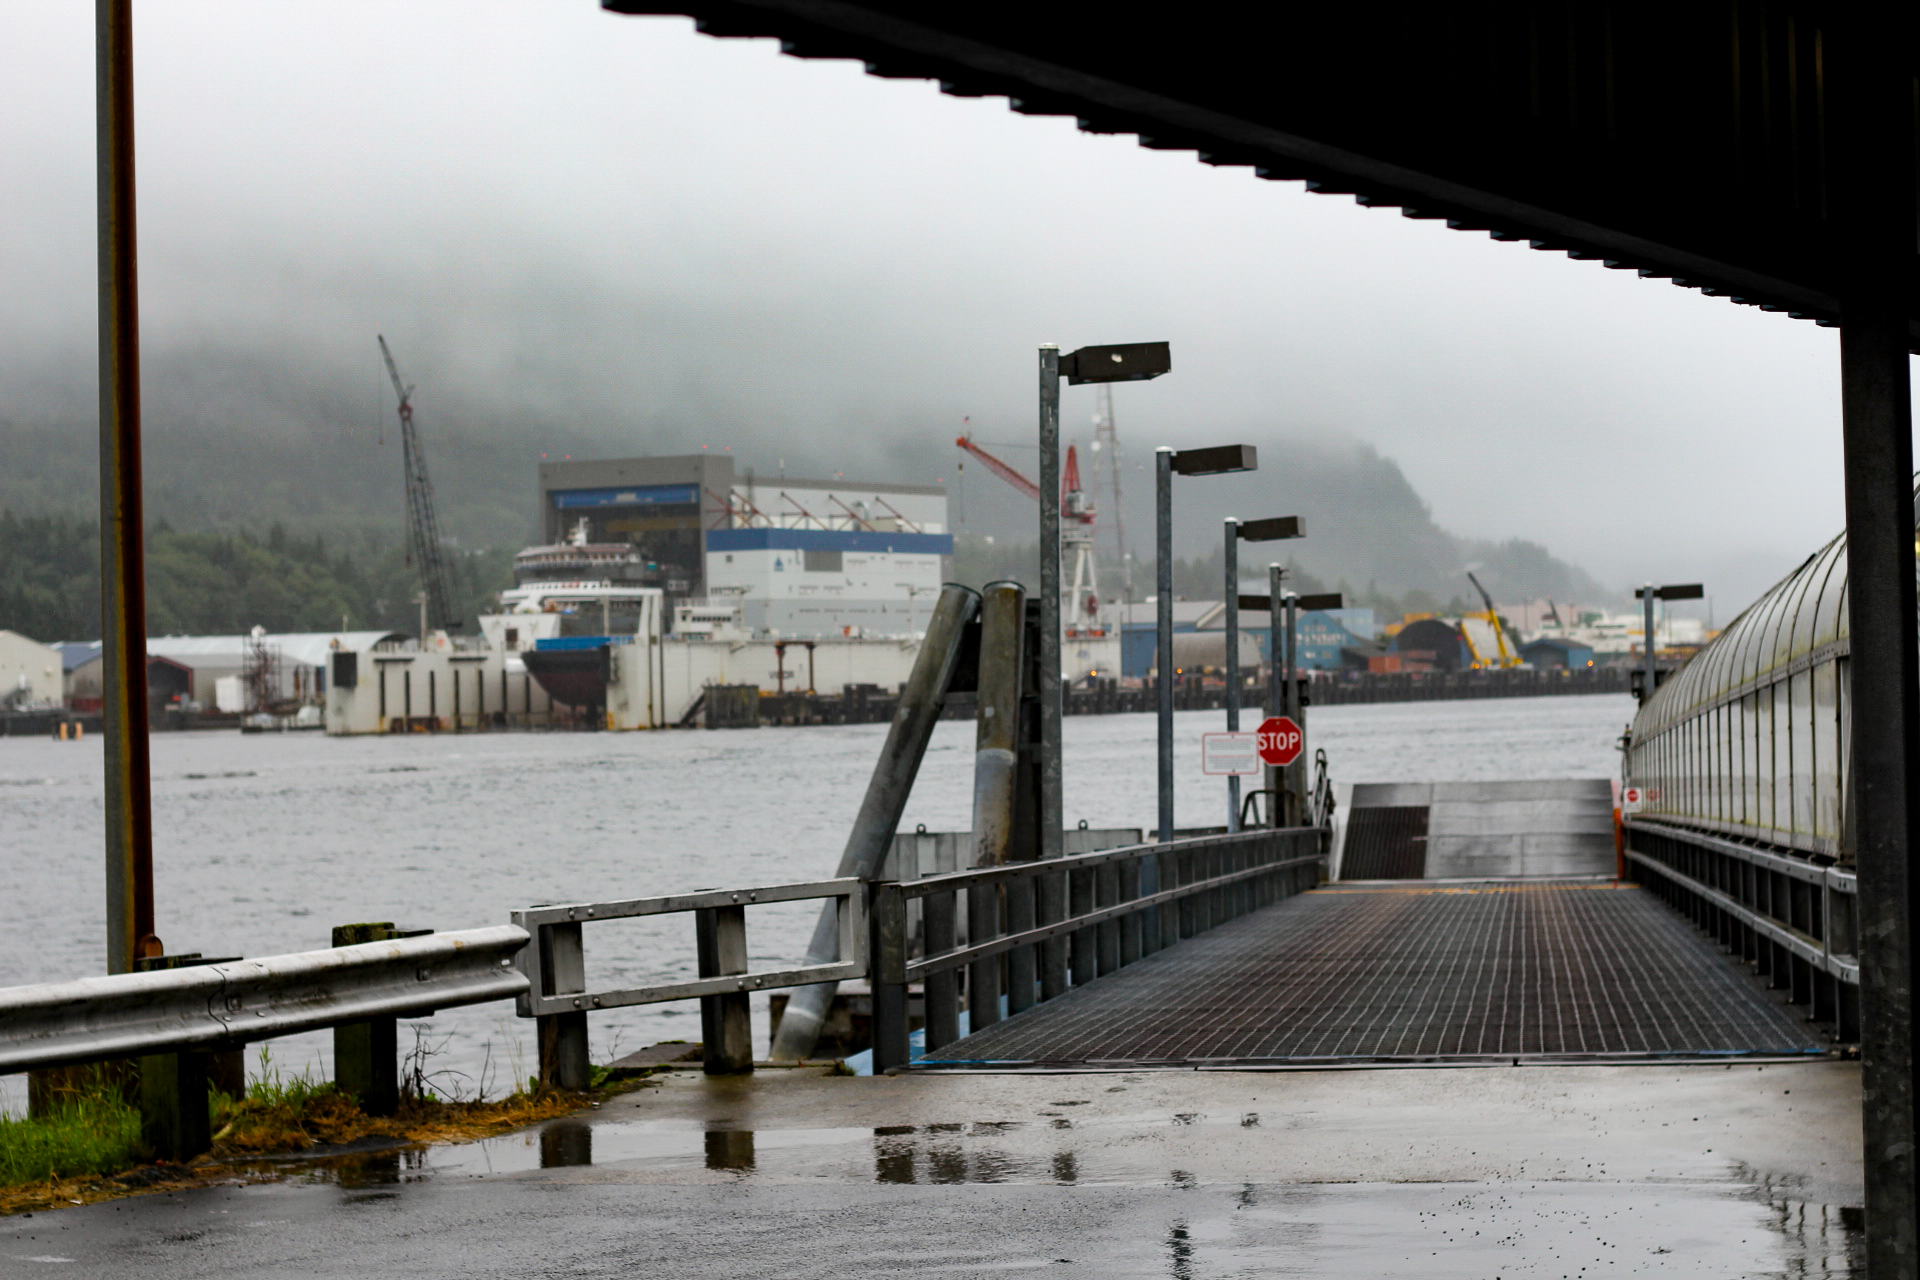 The Ferry Dock... The Airport in Ketchikan is literally on an island so in order to get to the actual city, you have to ride the Ferry over to the main island!